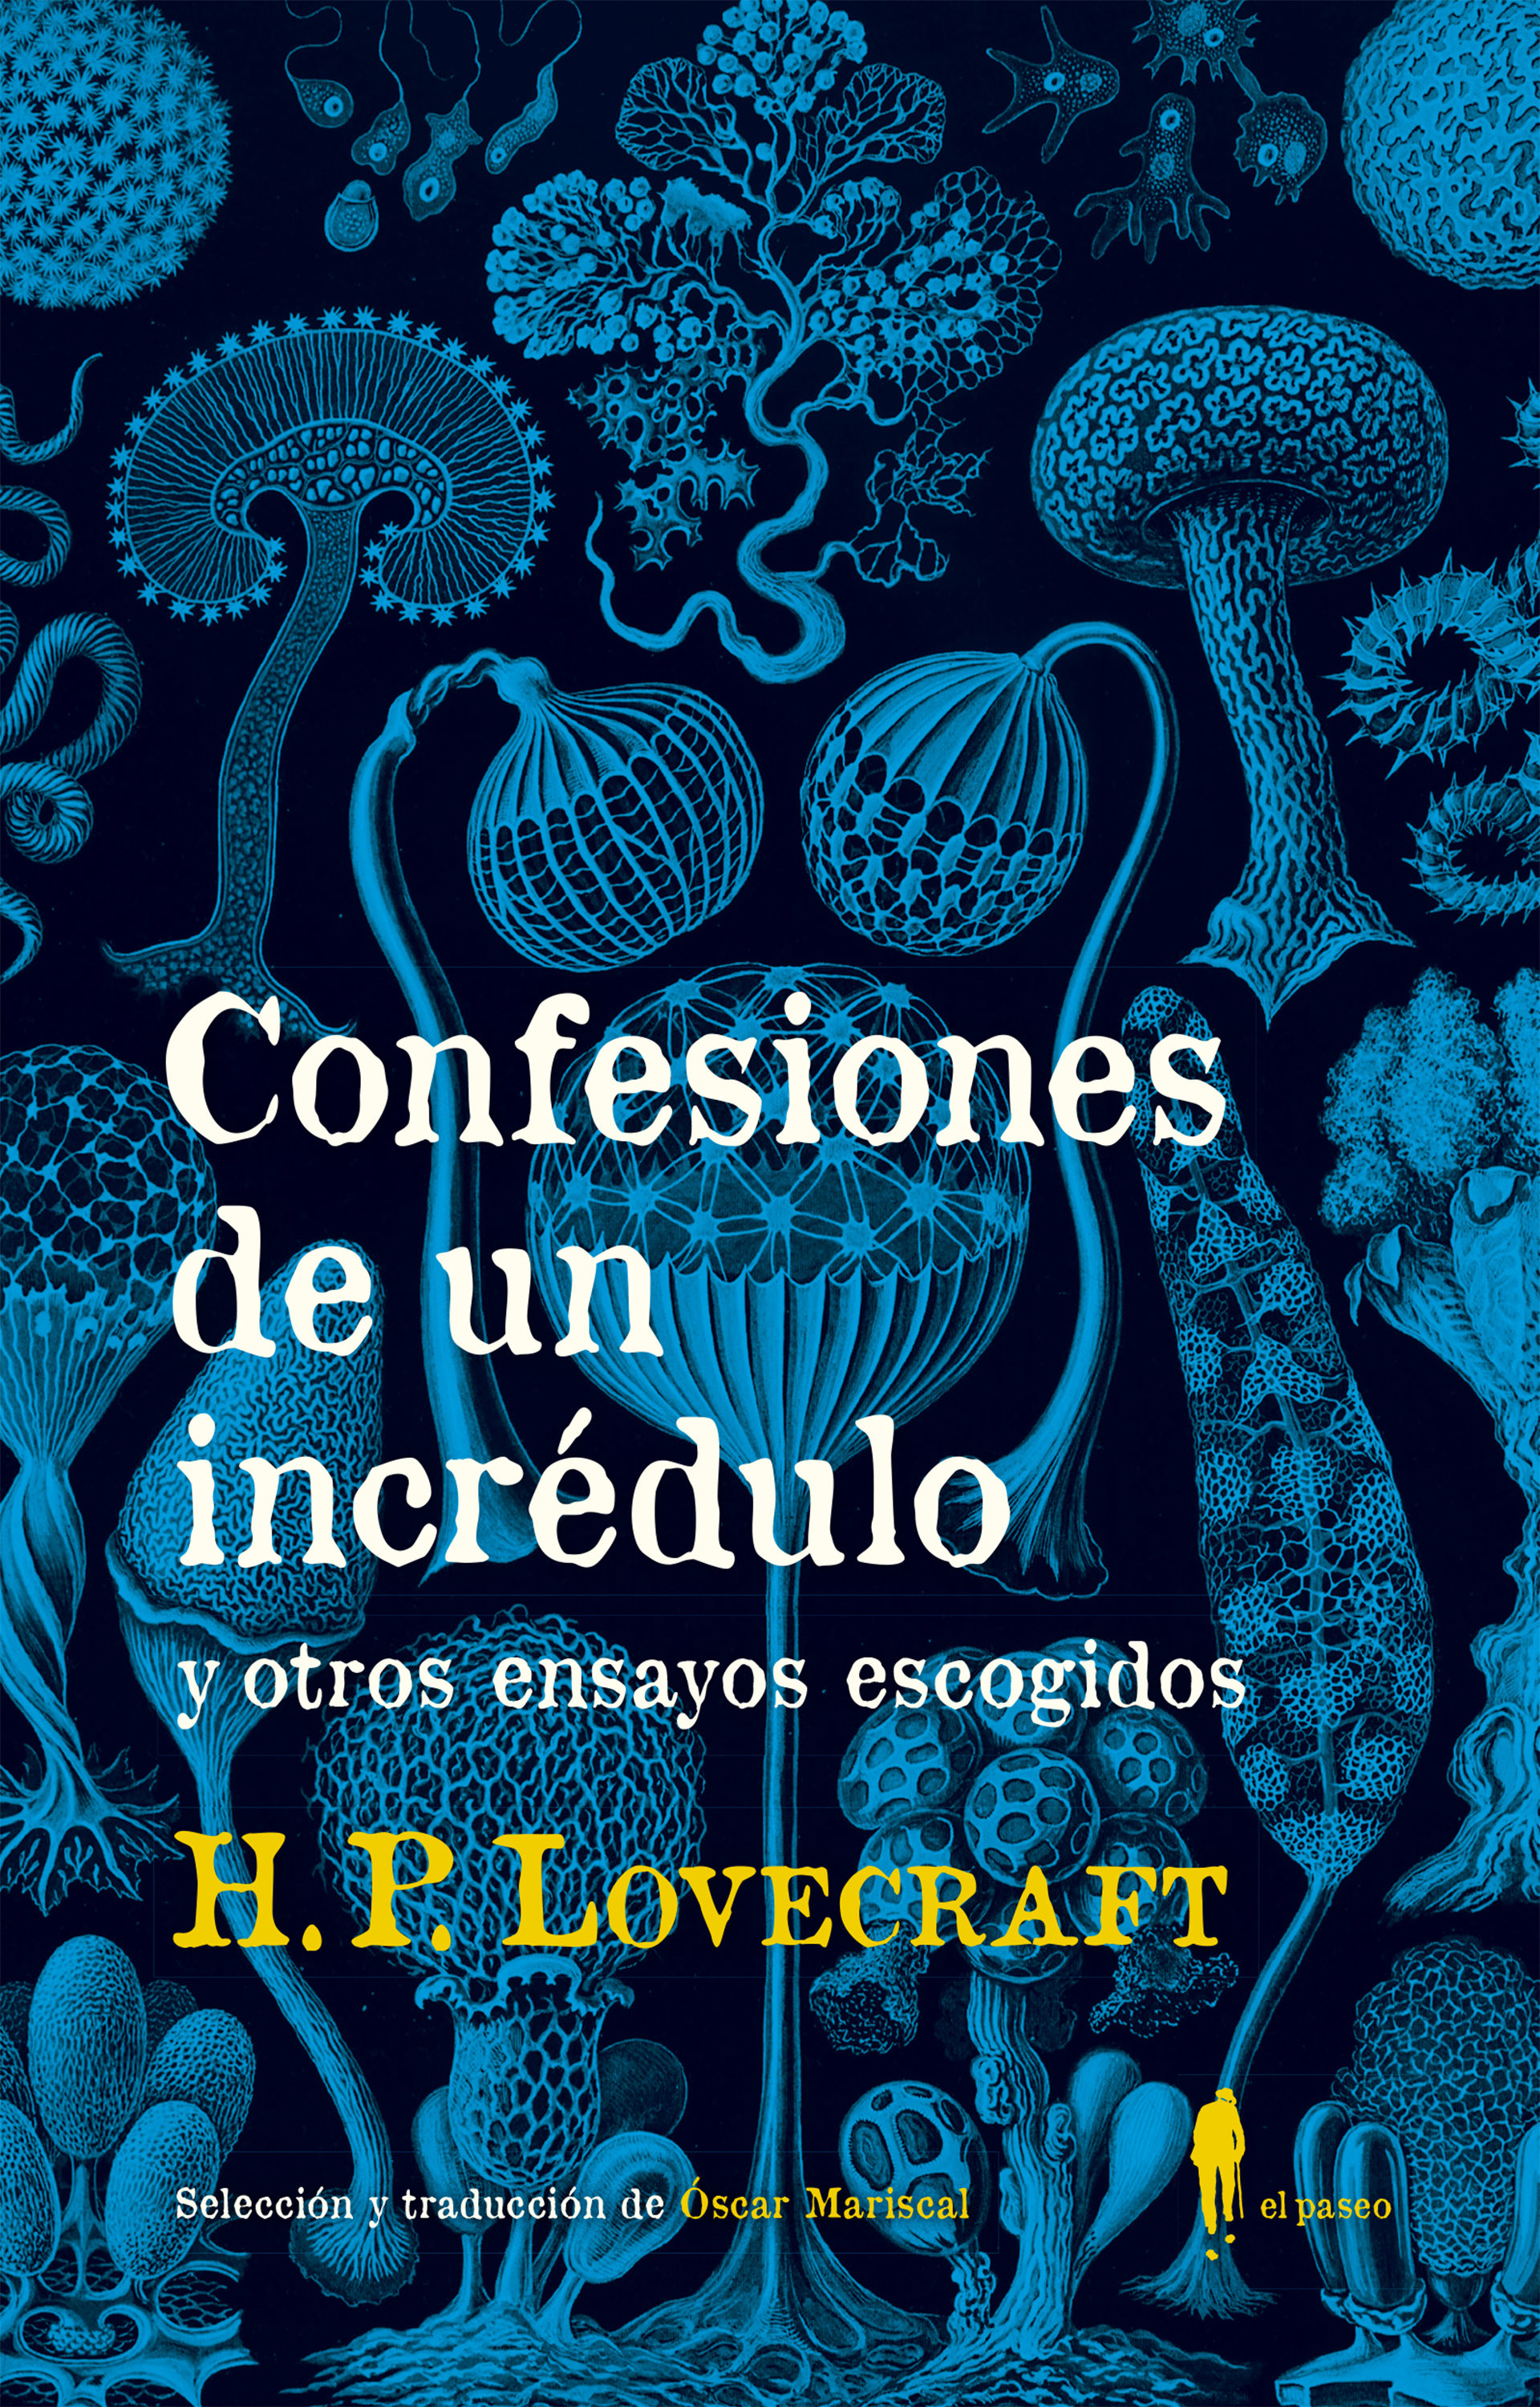 Como Descargar Libros Epub Confesiones De Un IncrÉdulo Ebook H P Lovecraft Descargar Libro Pdf O Epub 9788494898440